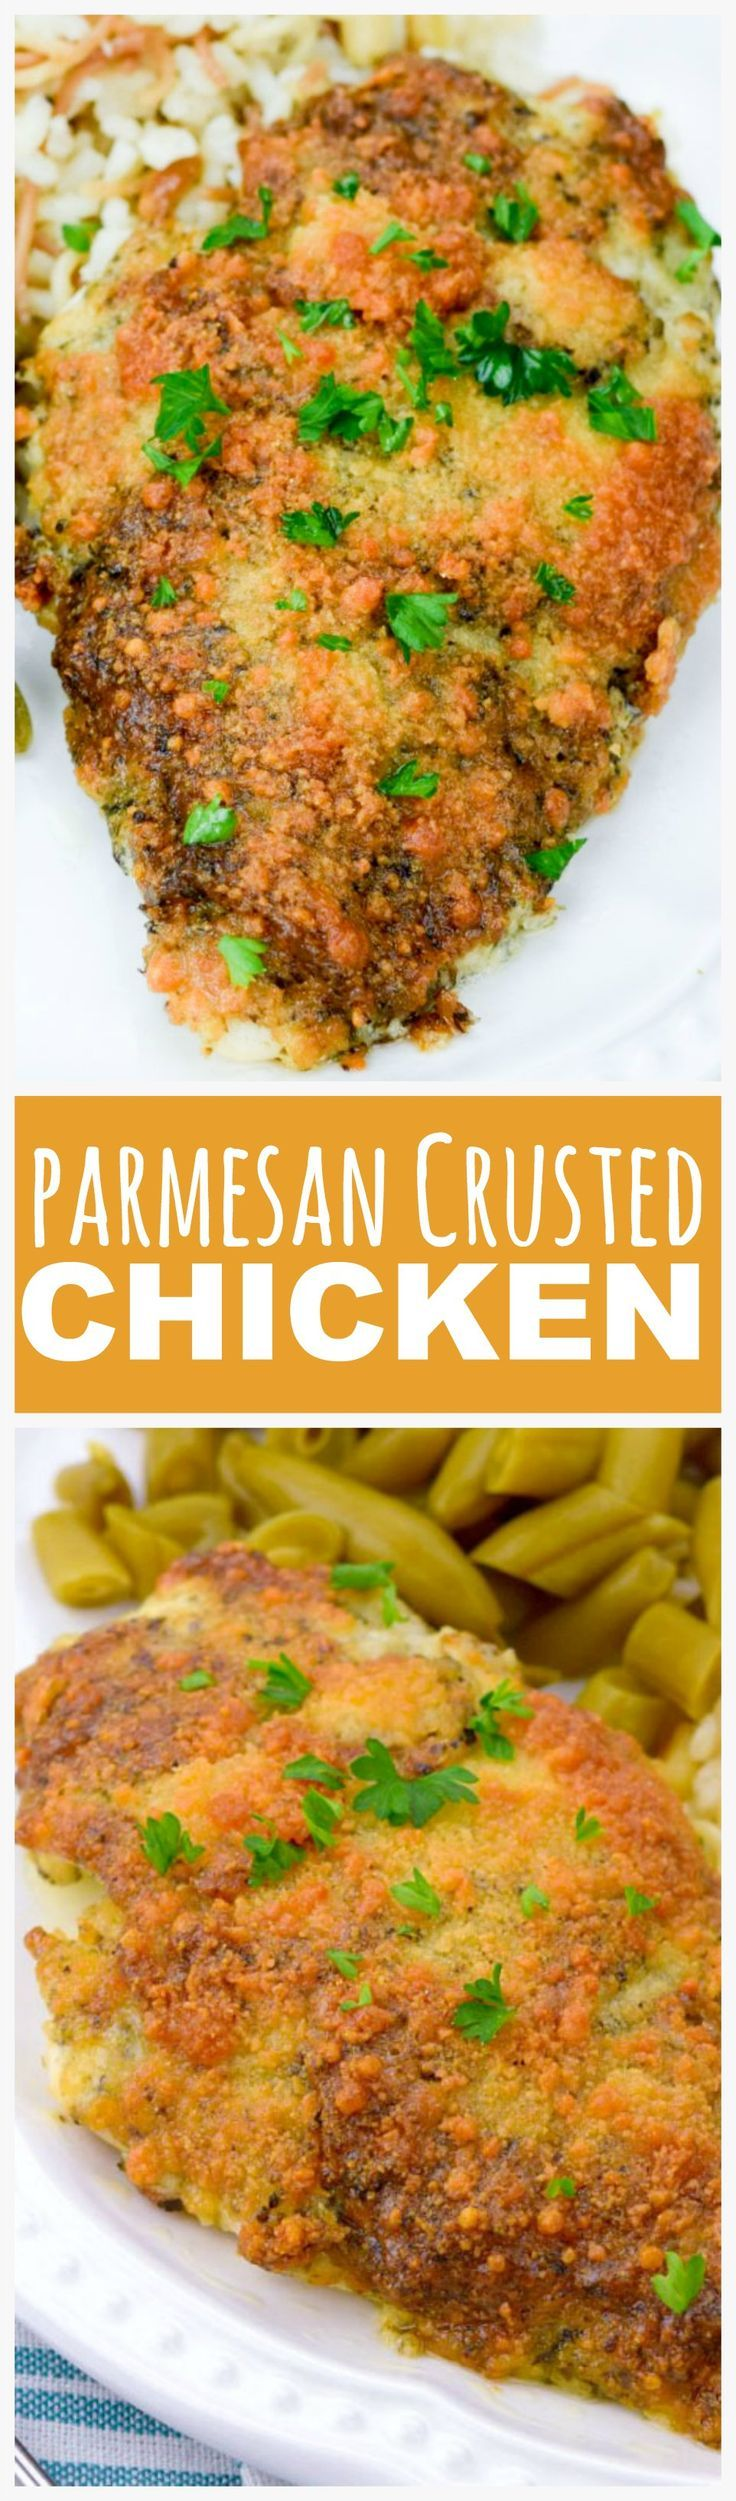 Parmesan Crusted Chicken-Ready in 20 minutes and only takes 4 ingredients! Really  yummy, moist and tender! Best quick dinner and its kid friendly.